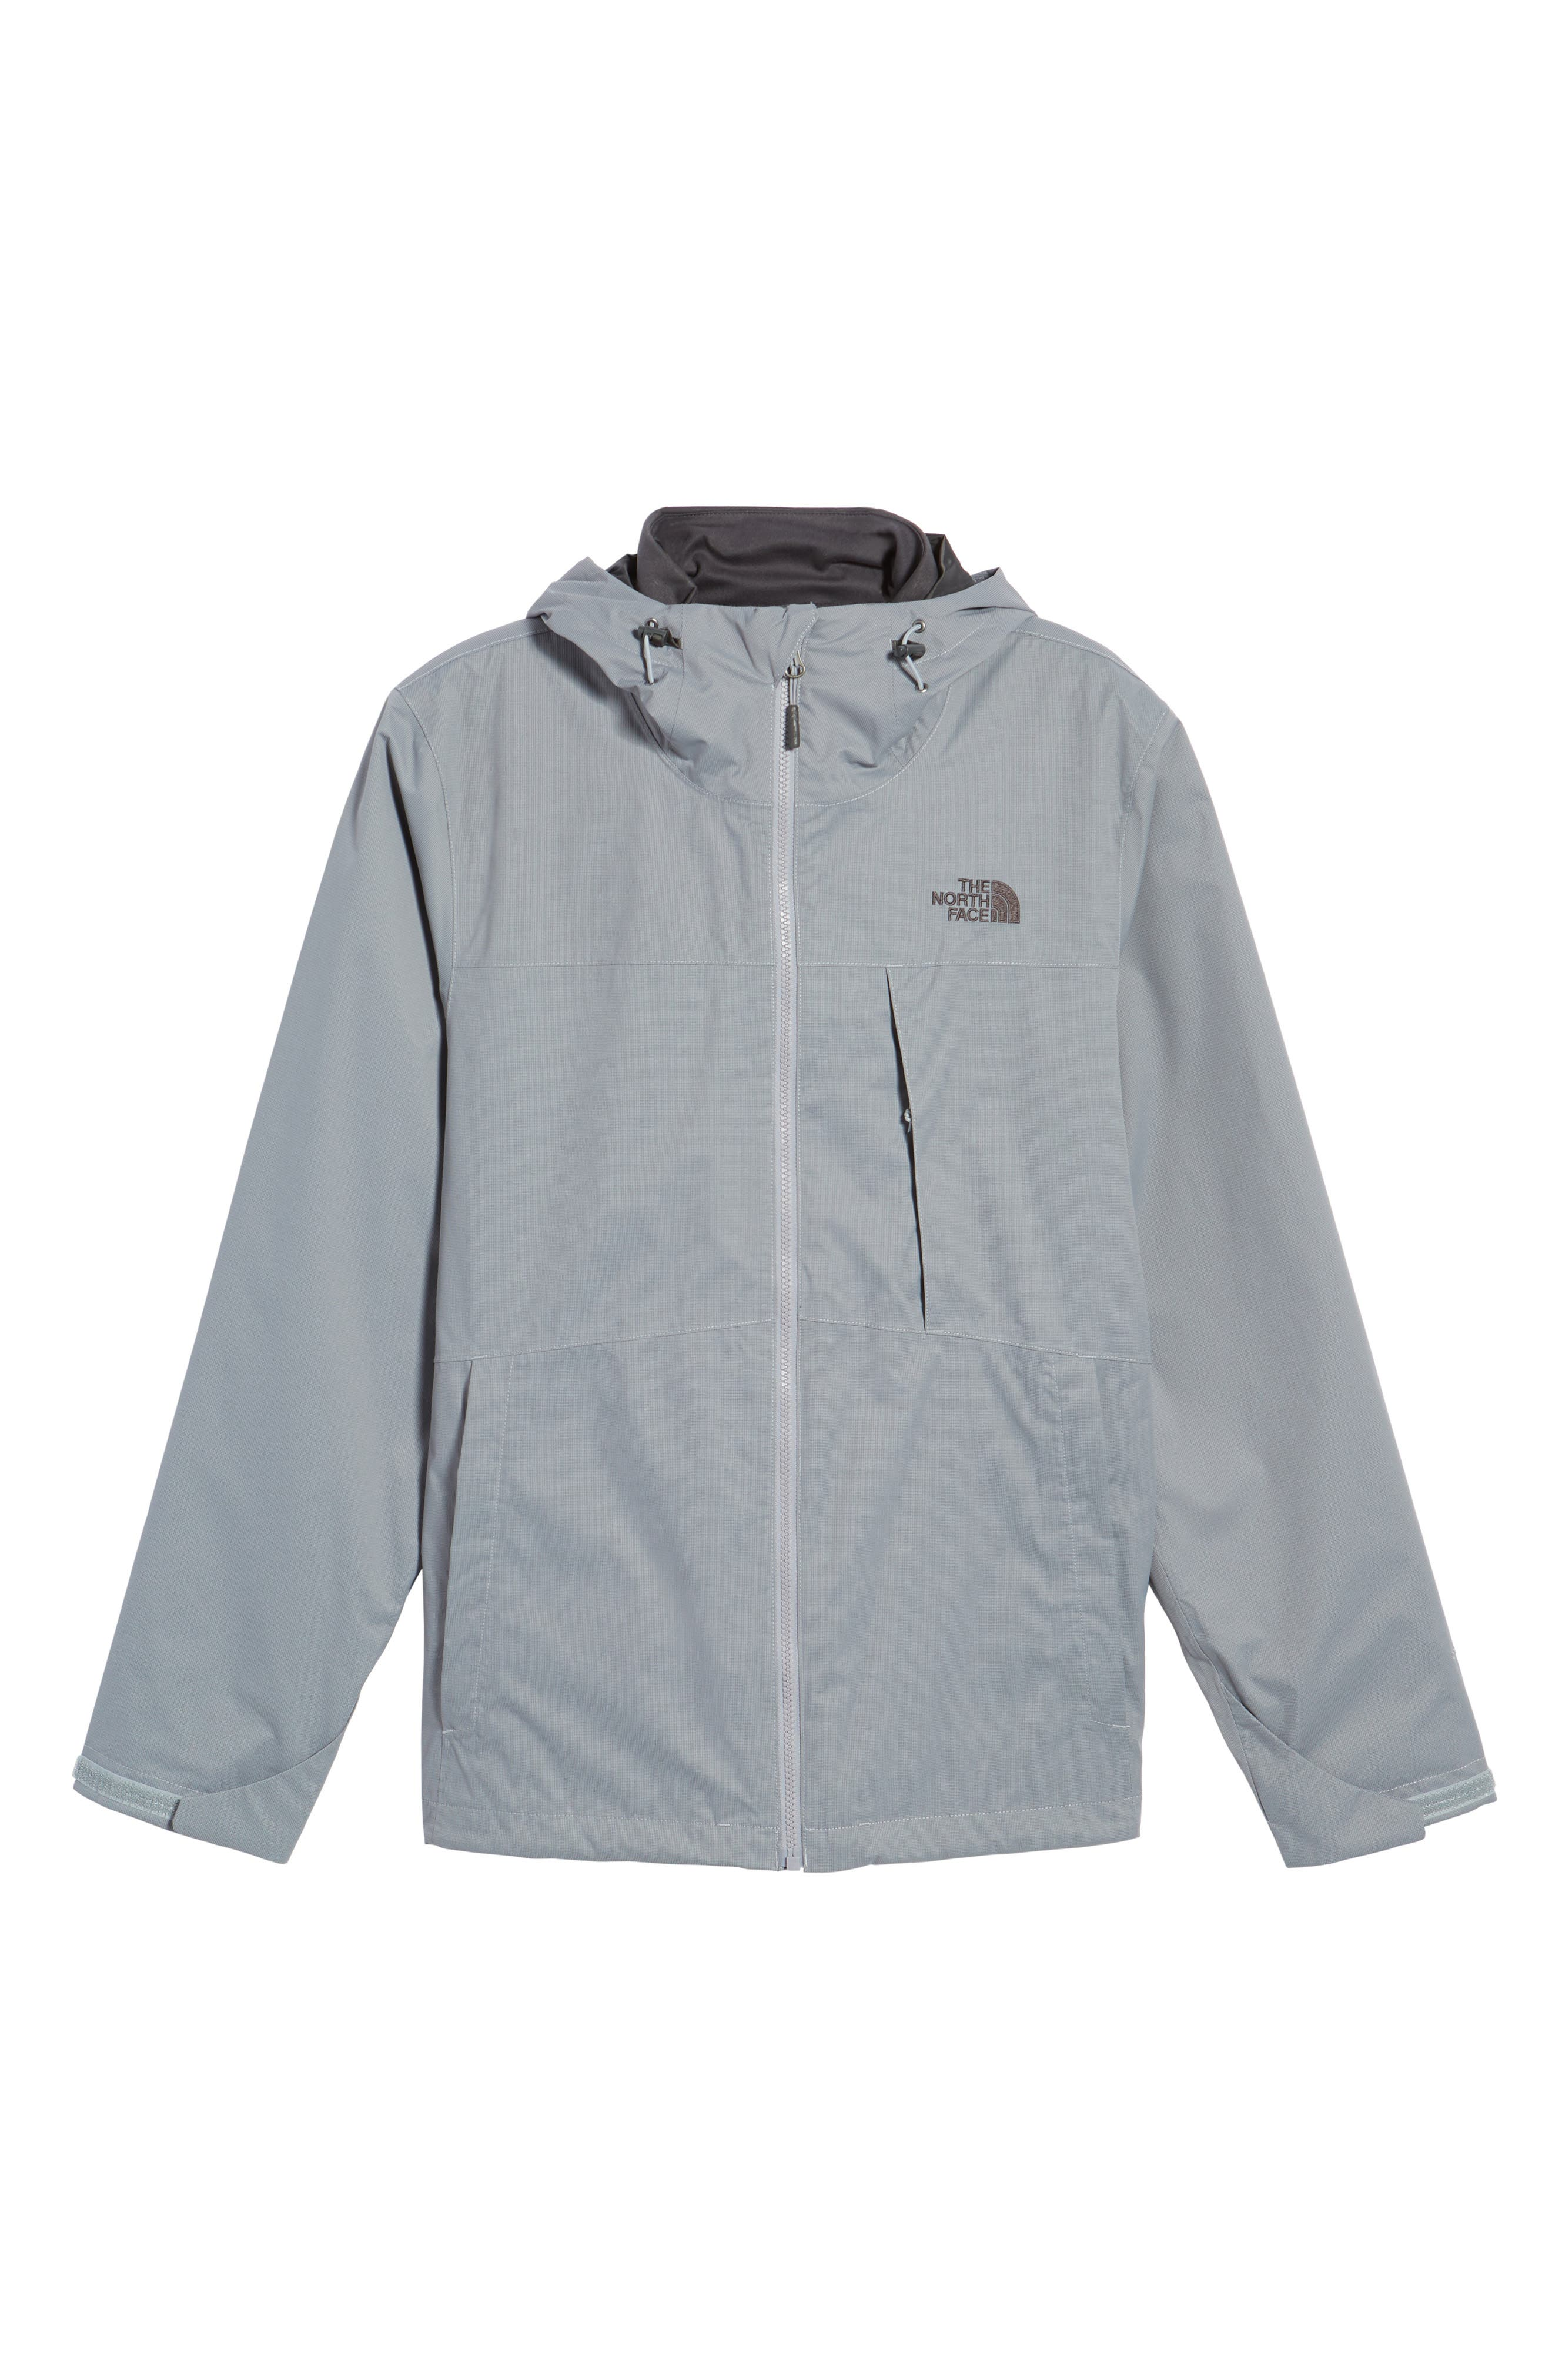 'Arrowood' TriClimate<sup>®</sup> 3-in-1 Jacket,                             Alternate thumbnail 6, color,                             Mid Grey